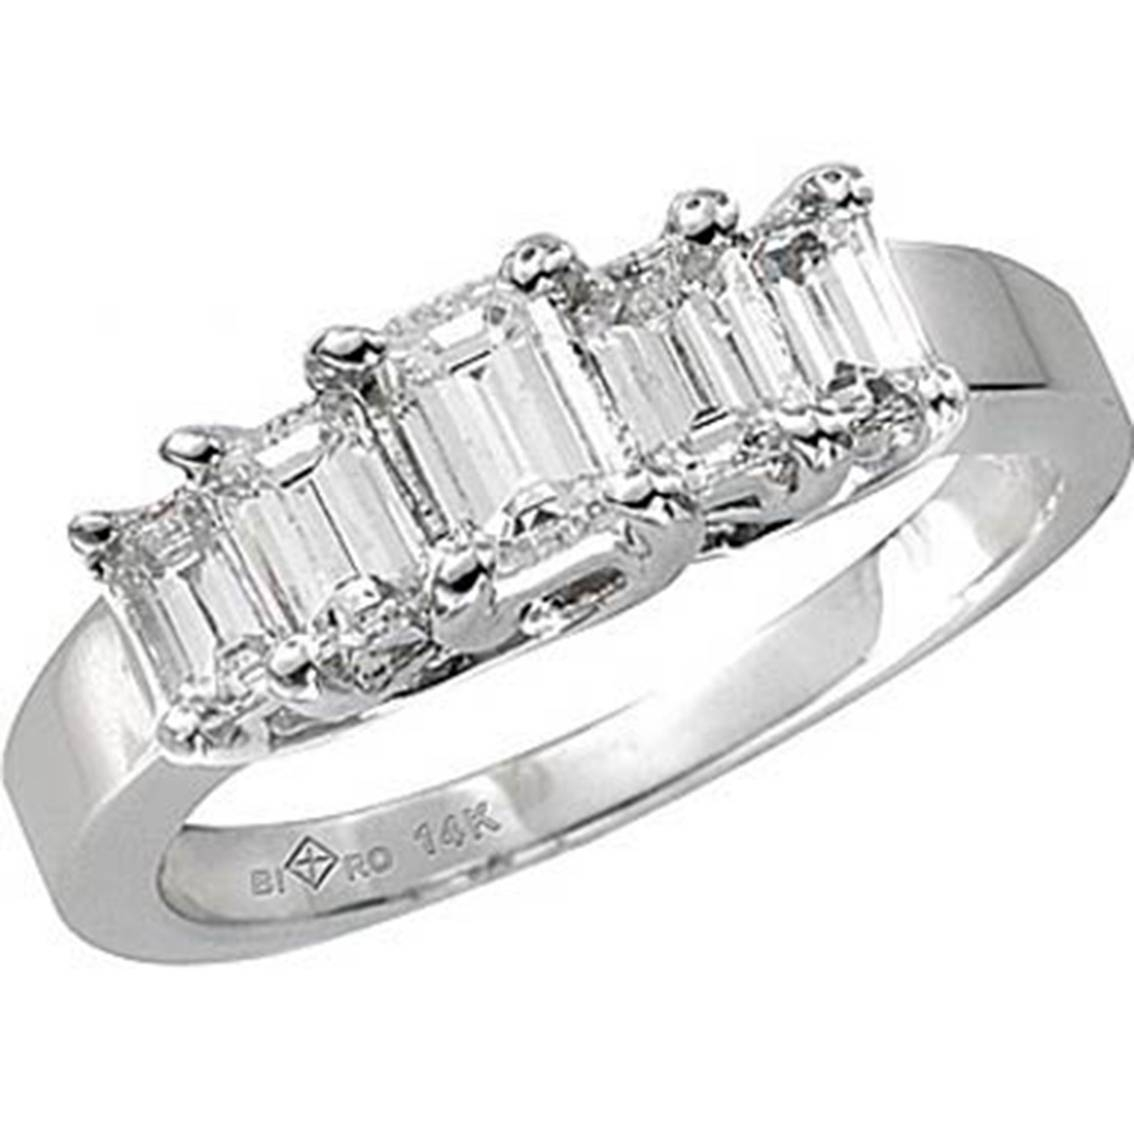 14K White Gold 1 Ctw Cindy Graduated 5 Stone Emerald Cut Diamond For Current Emerald Cut Diamond Anniversary Rings (Gallery 3 of 25)